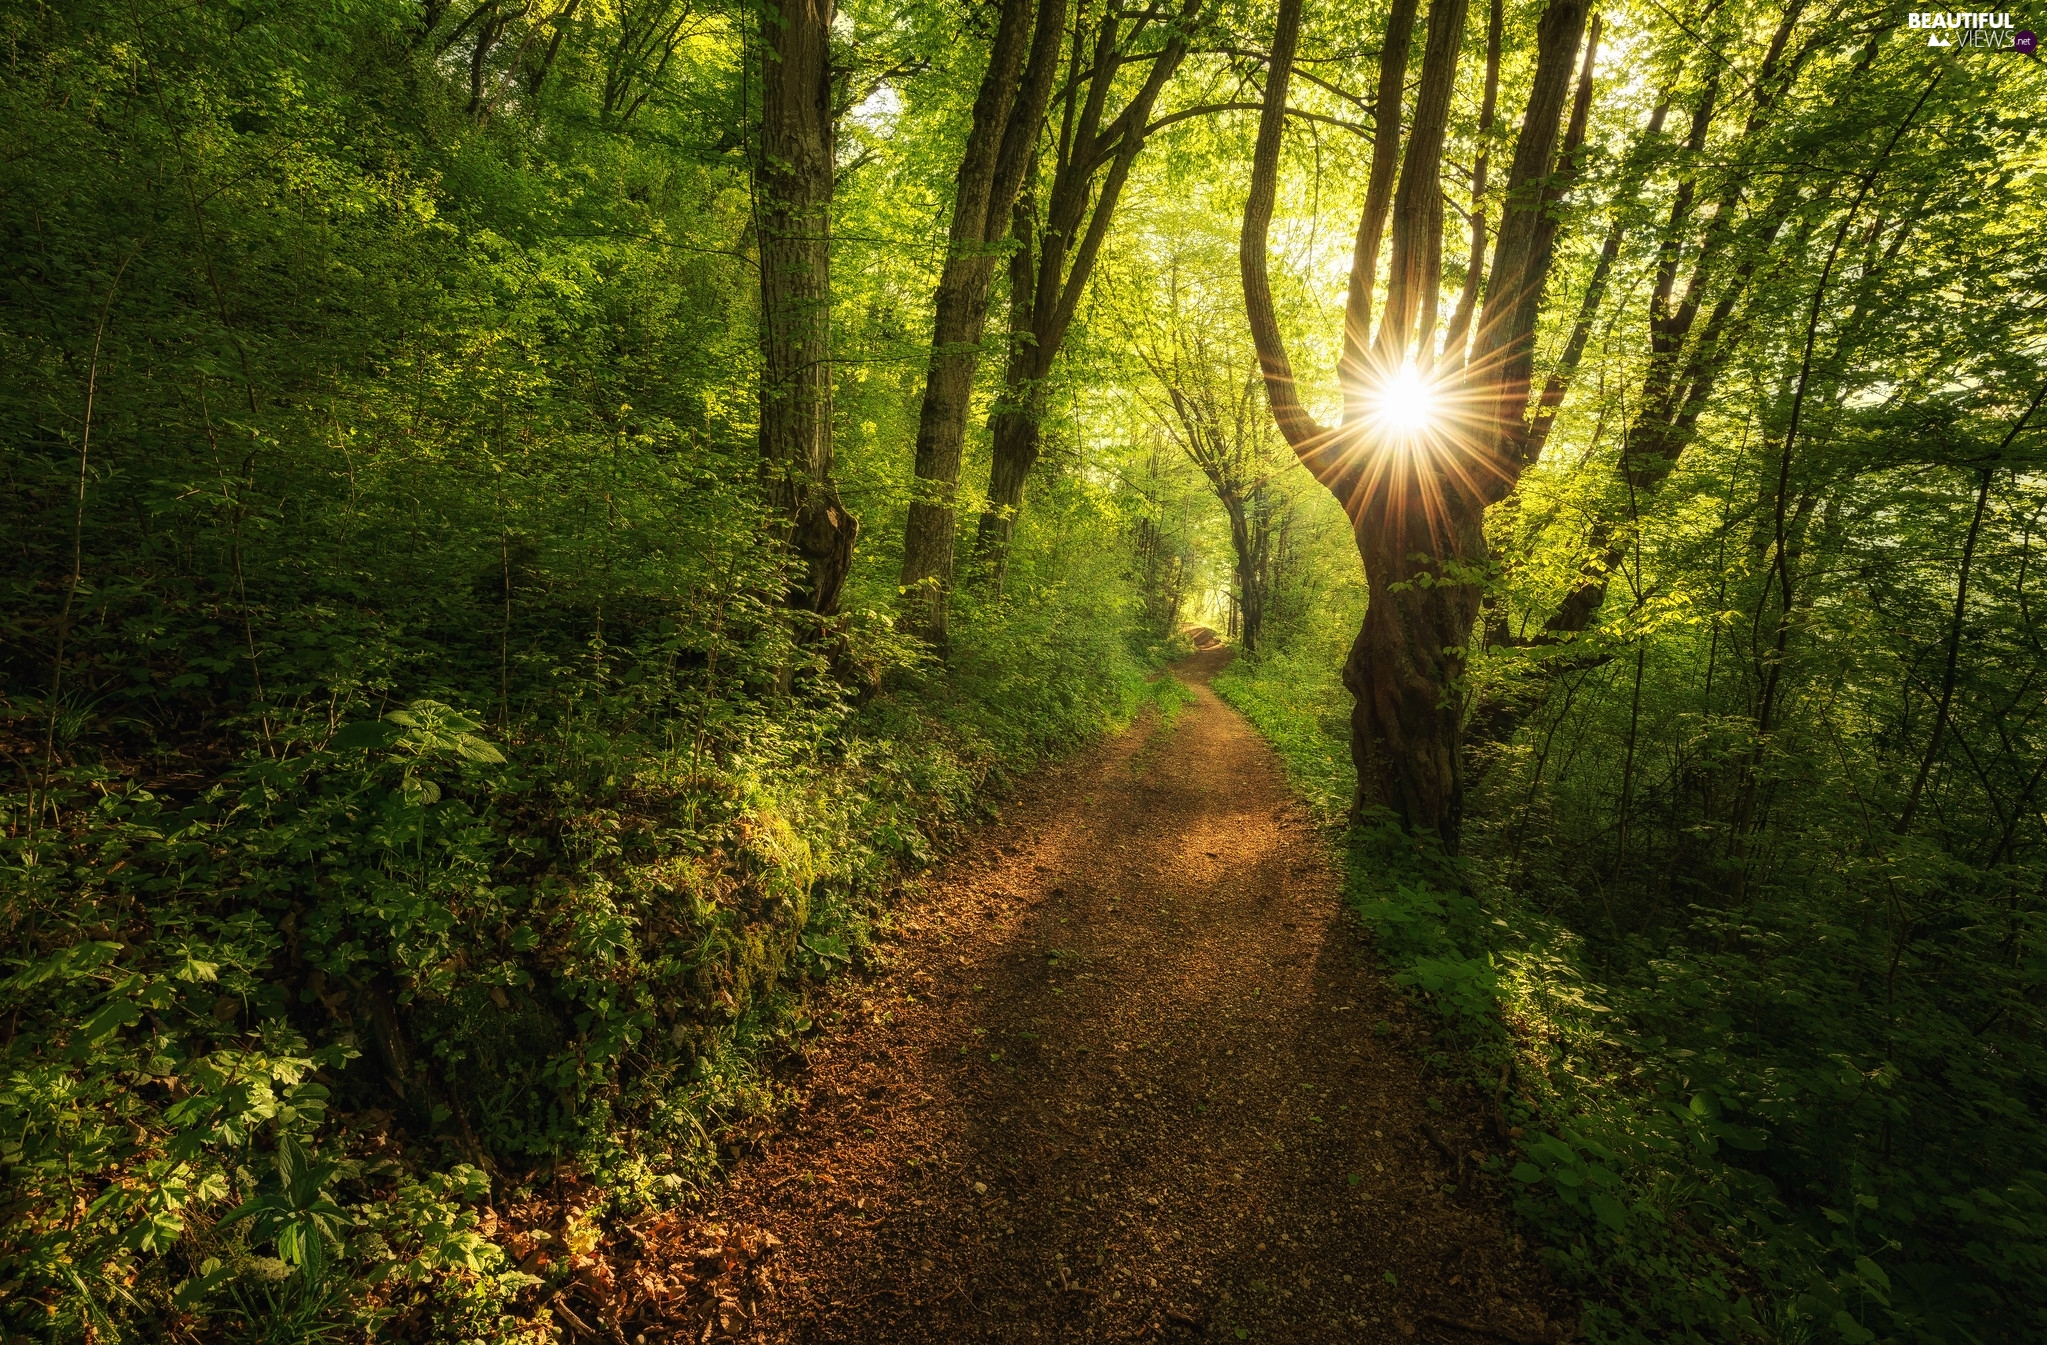 Path, rays of the Sun, trees, viewes, forest